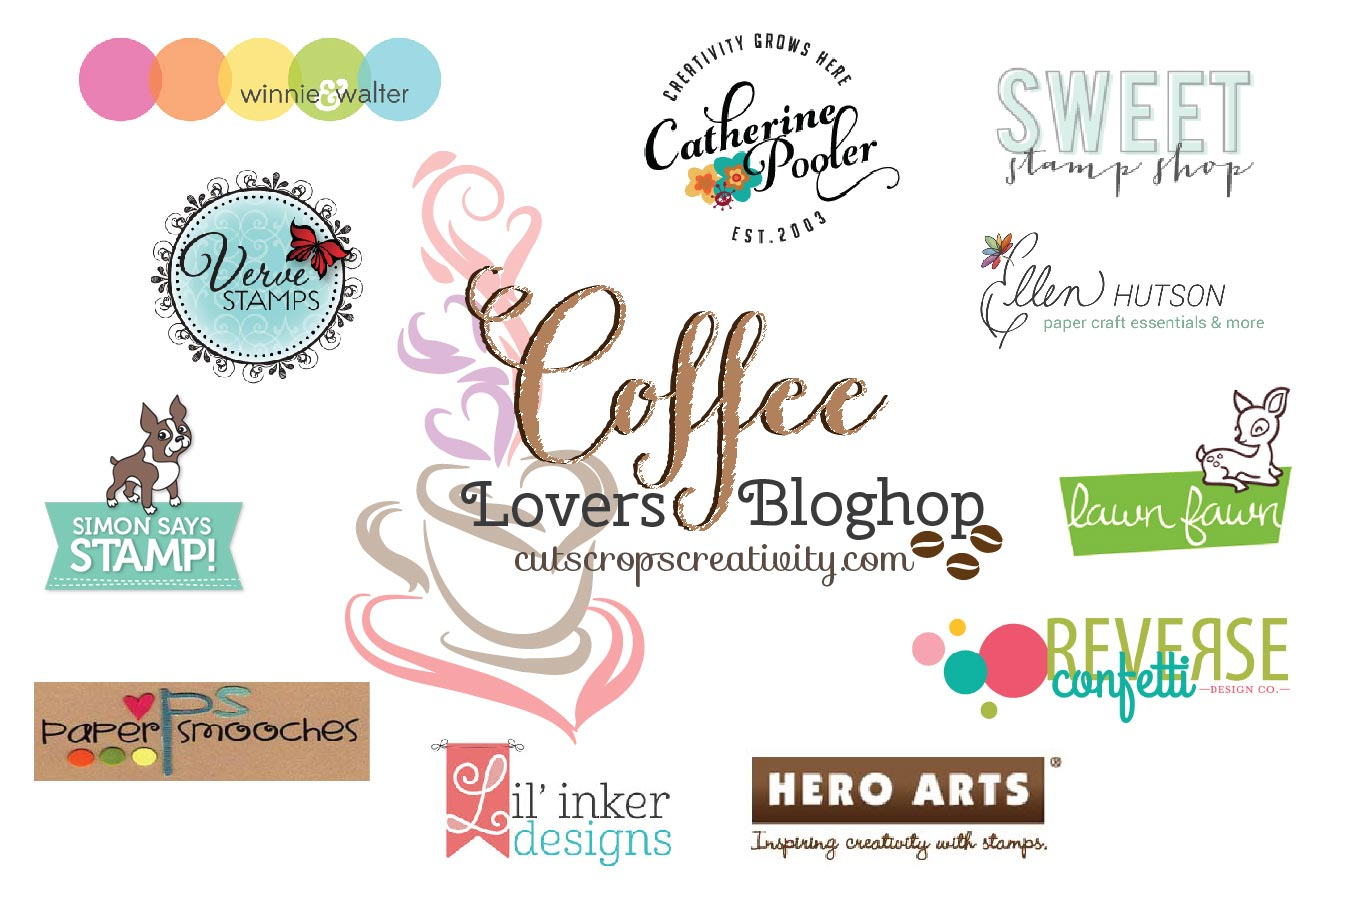 Join the coffee blog hop 29th of September!